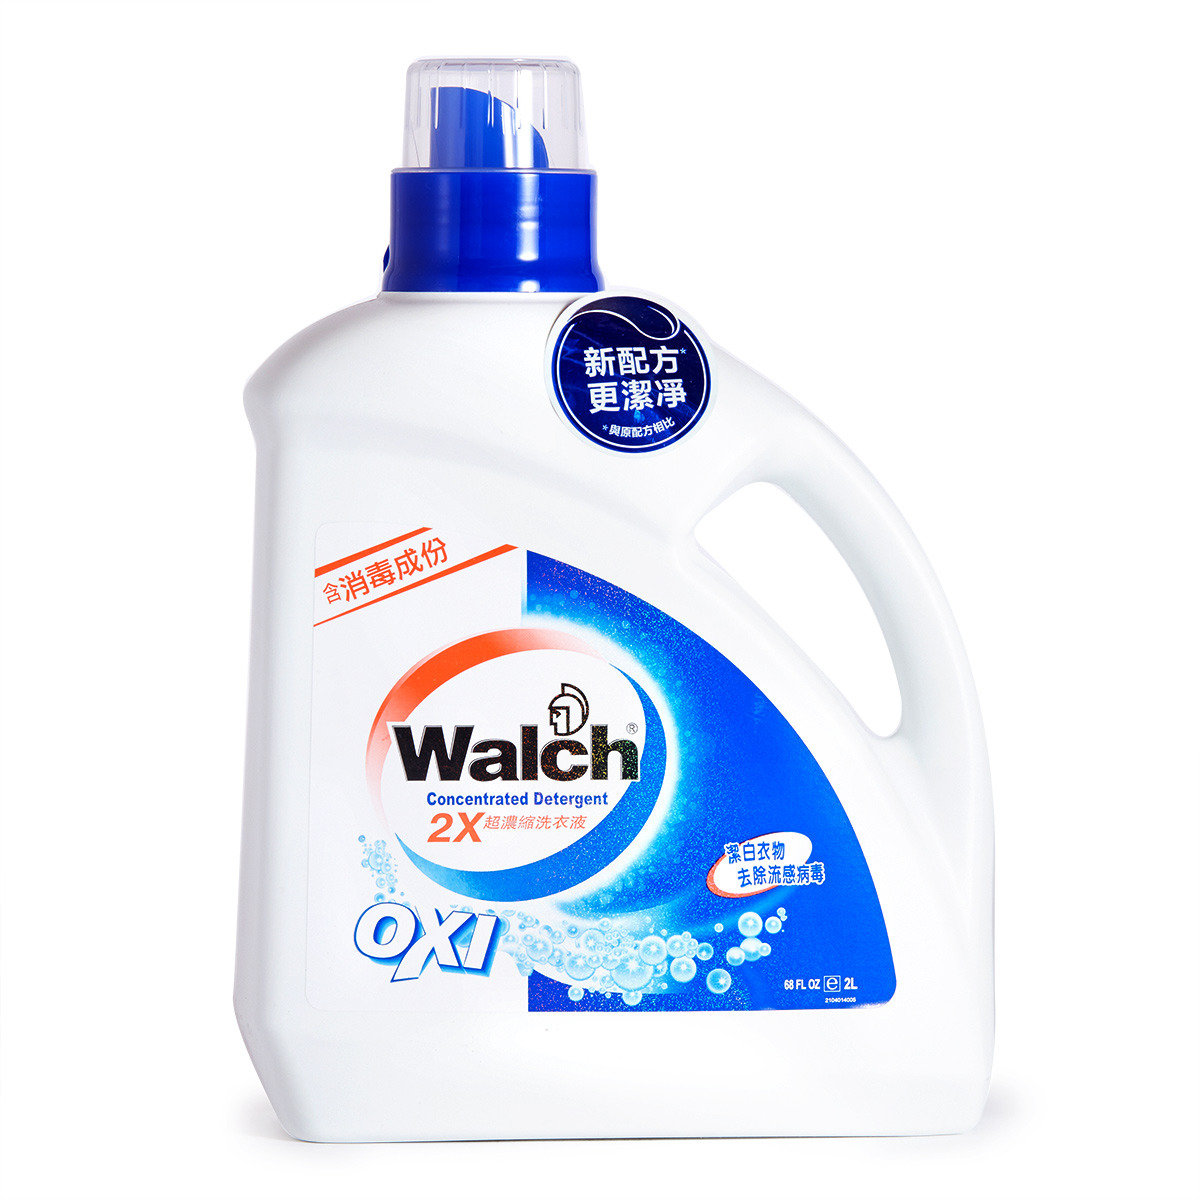 2X Concentrated Detergent